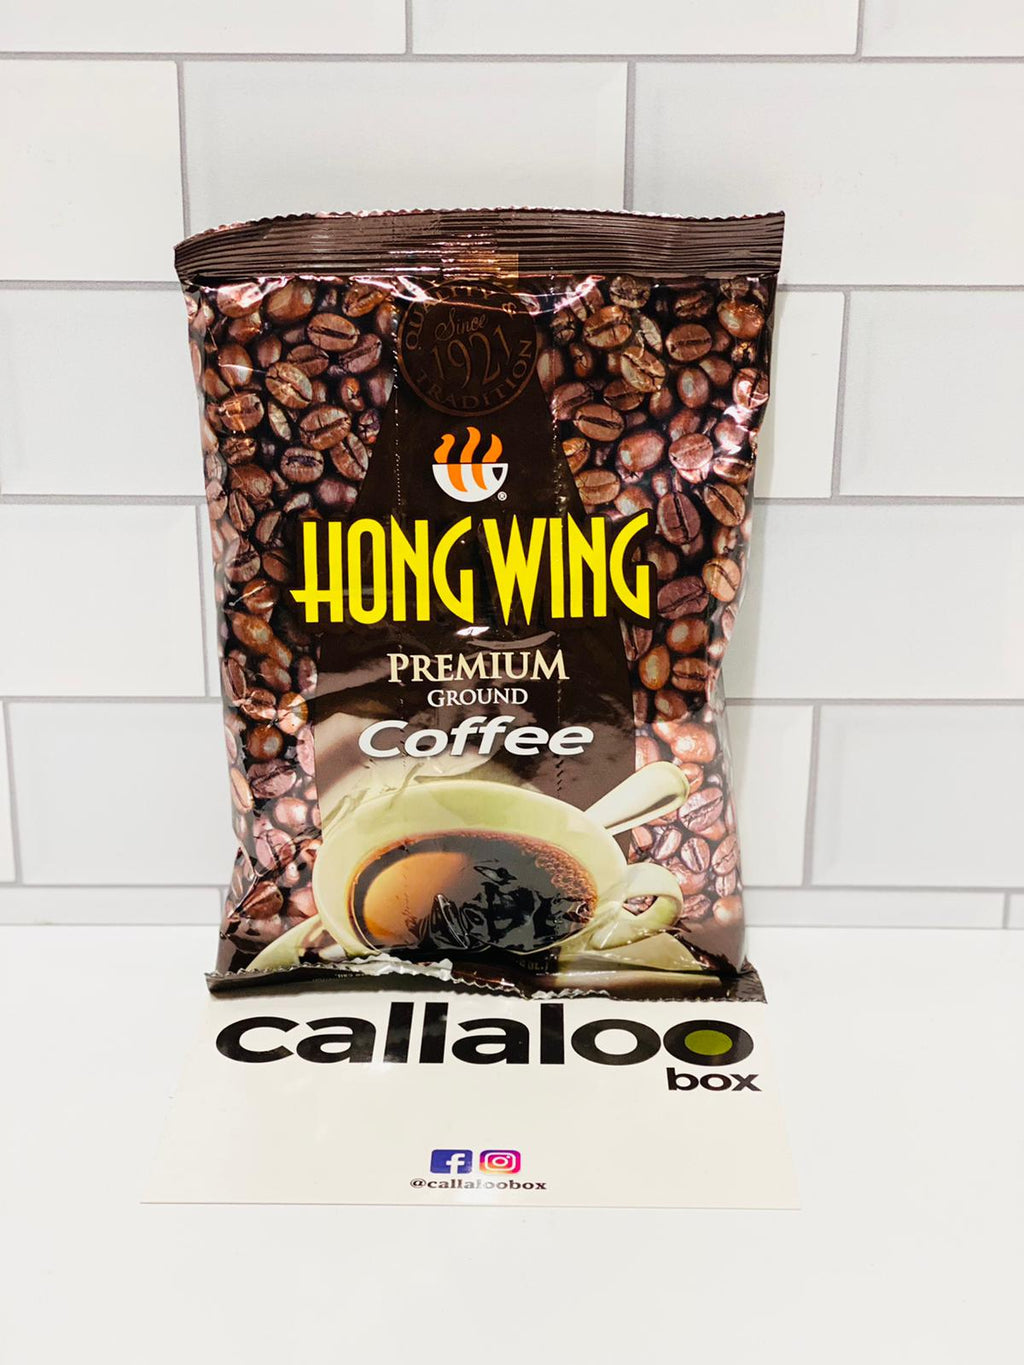 Callaloo Box Trinidad and Tobago Subscription Box Caribbean Online Grocery_Hong Wing Premium Ground Coffee_6.5oz_Single_2021.03